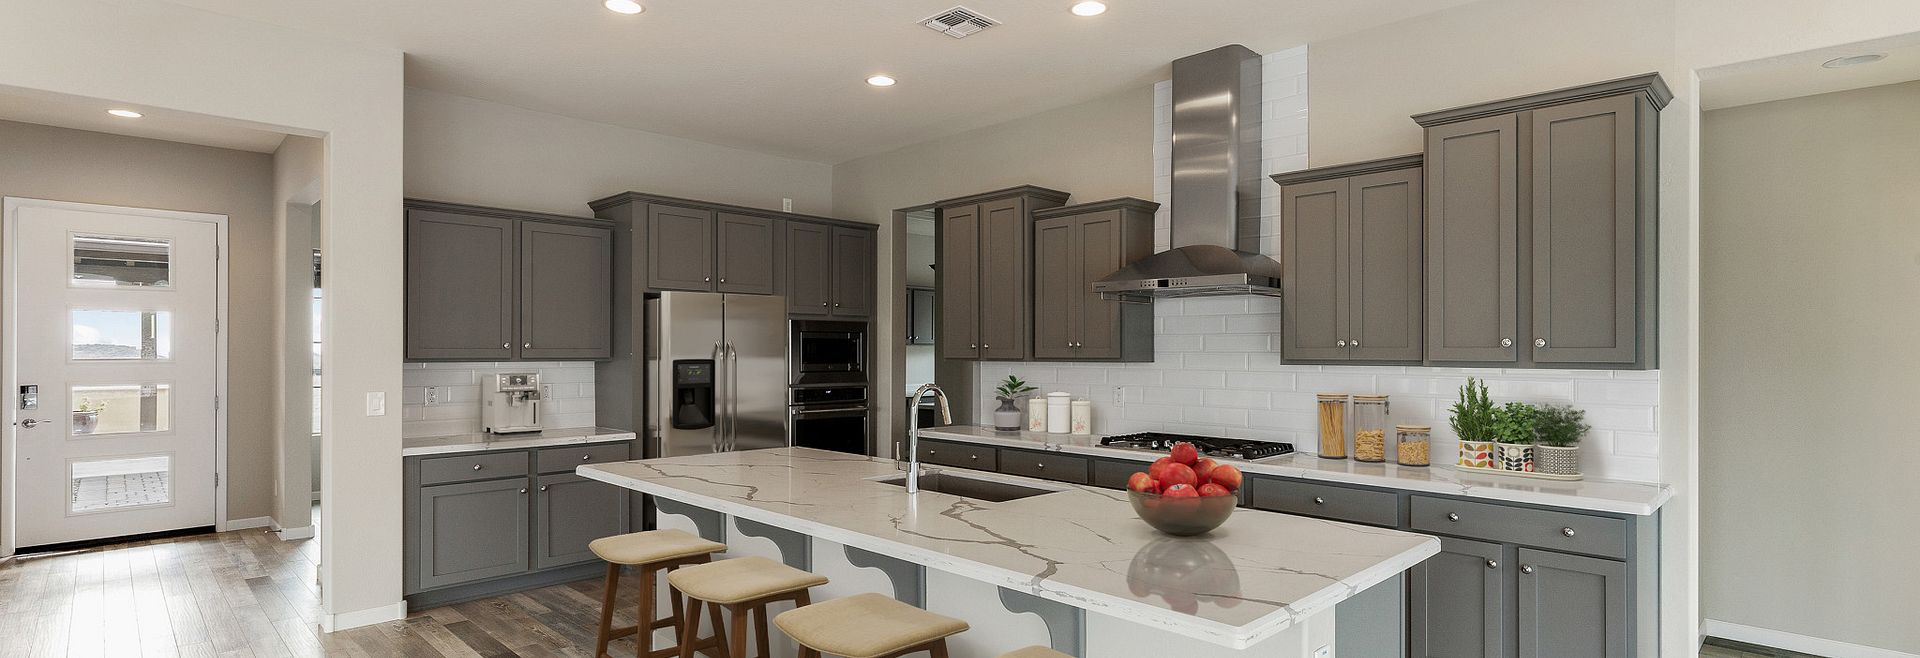 Virtually Rendered Kitchen